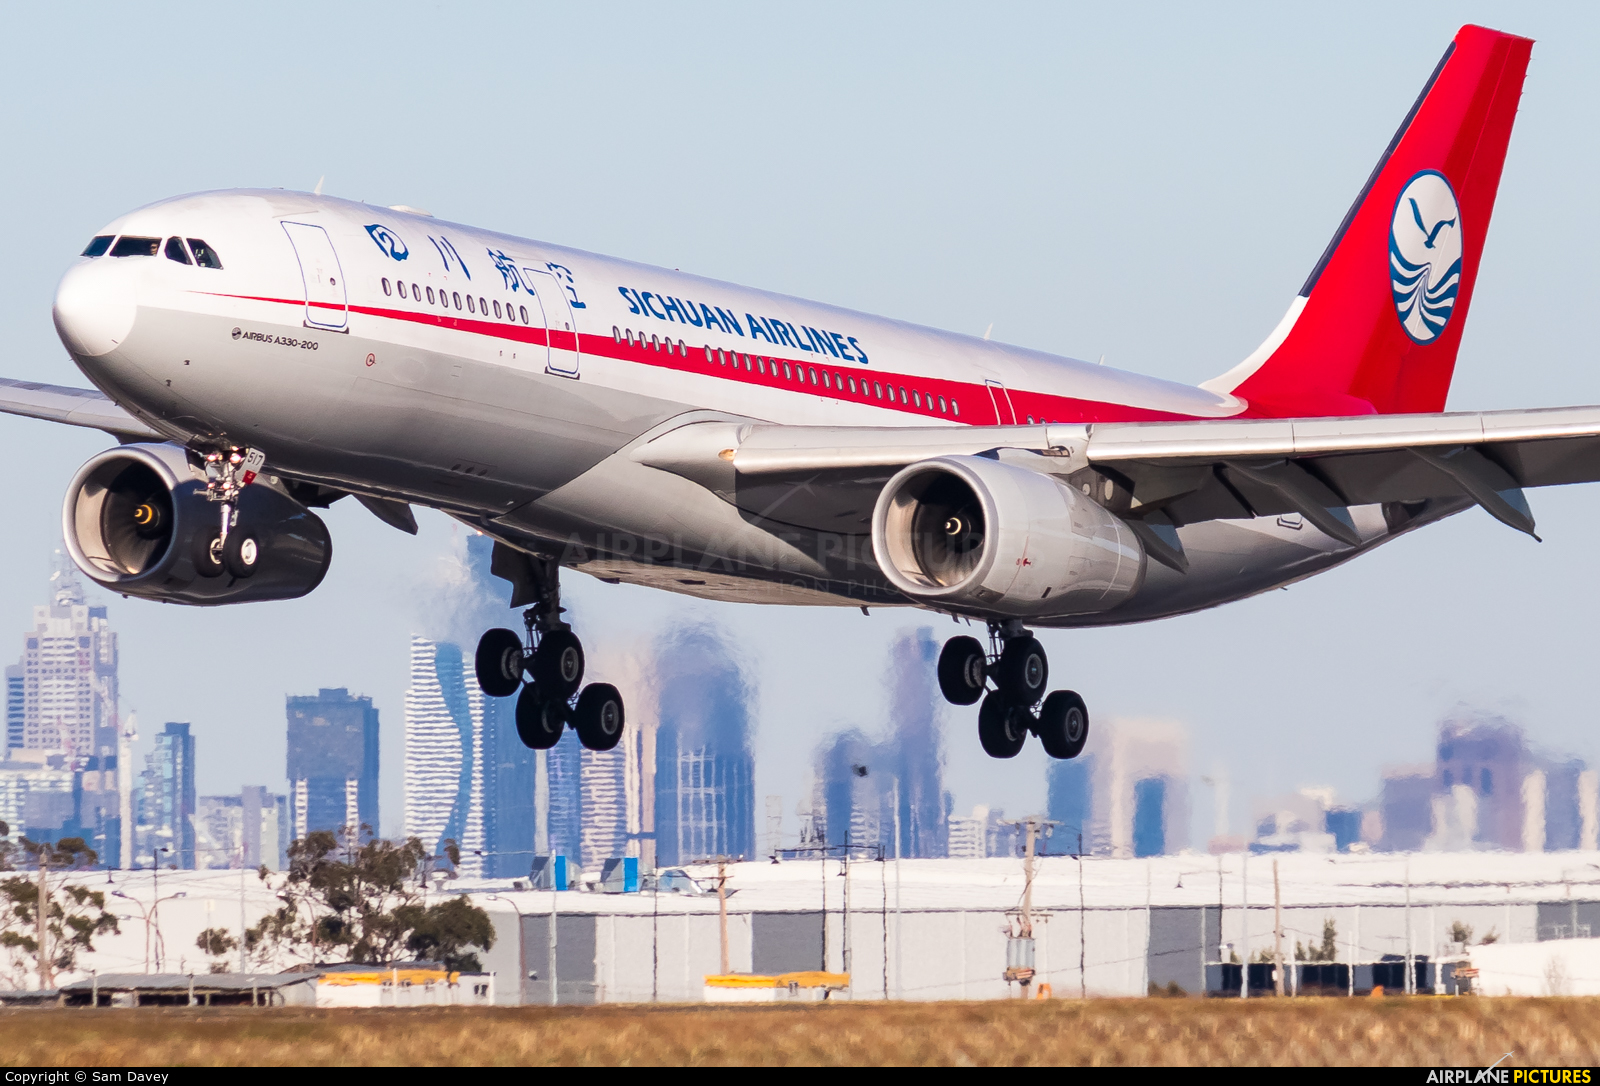 Sichuan Airlines  B-6517 aircraft at Melbourne Intl, VIC